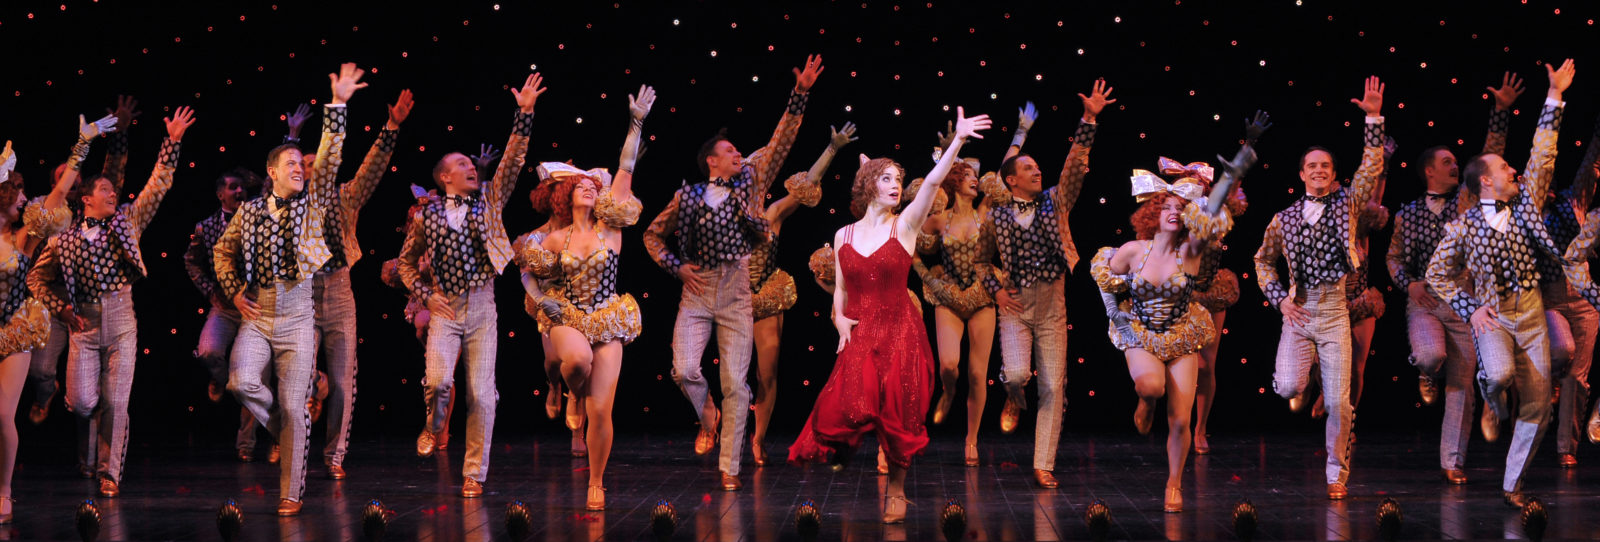 cncs Moulins comedies musicales 42nd street